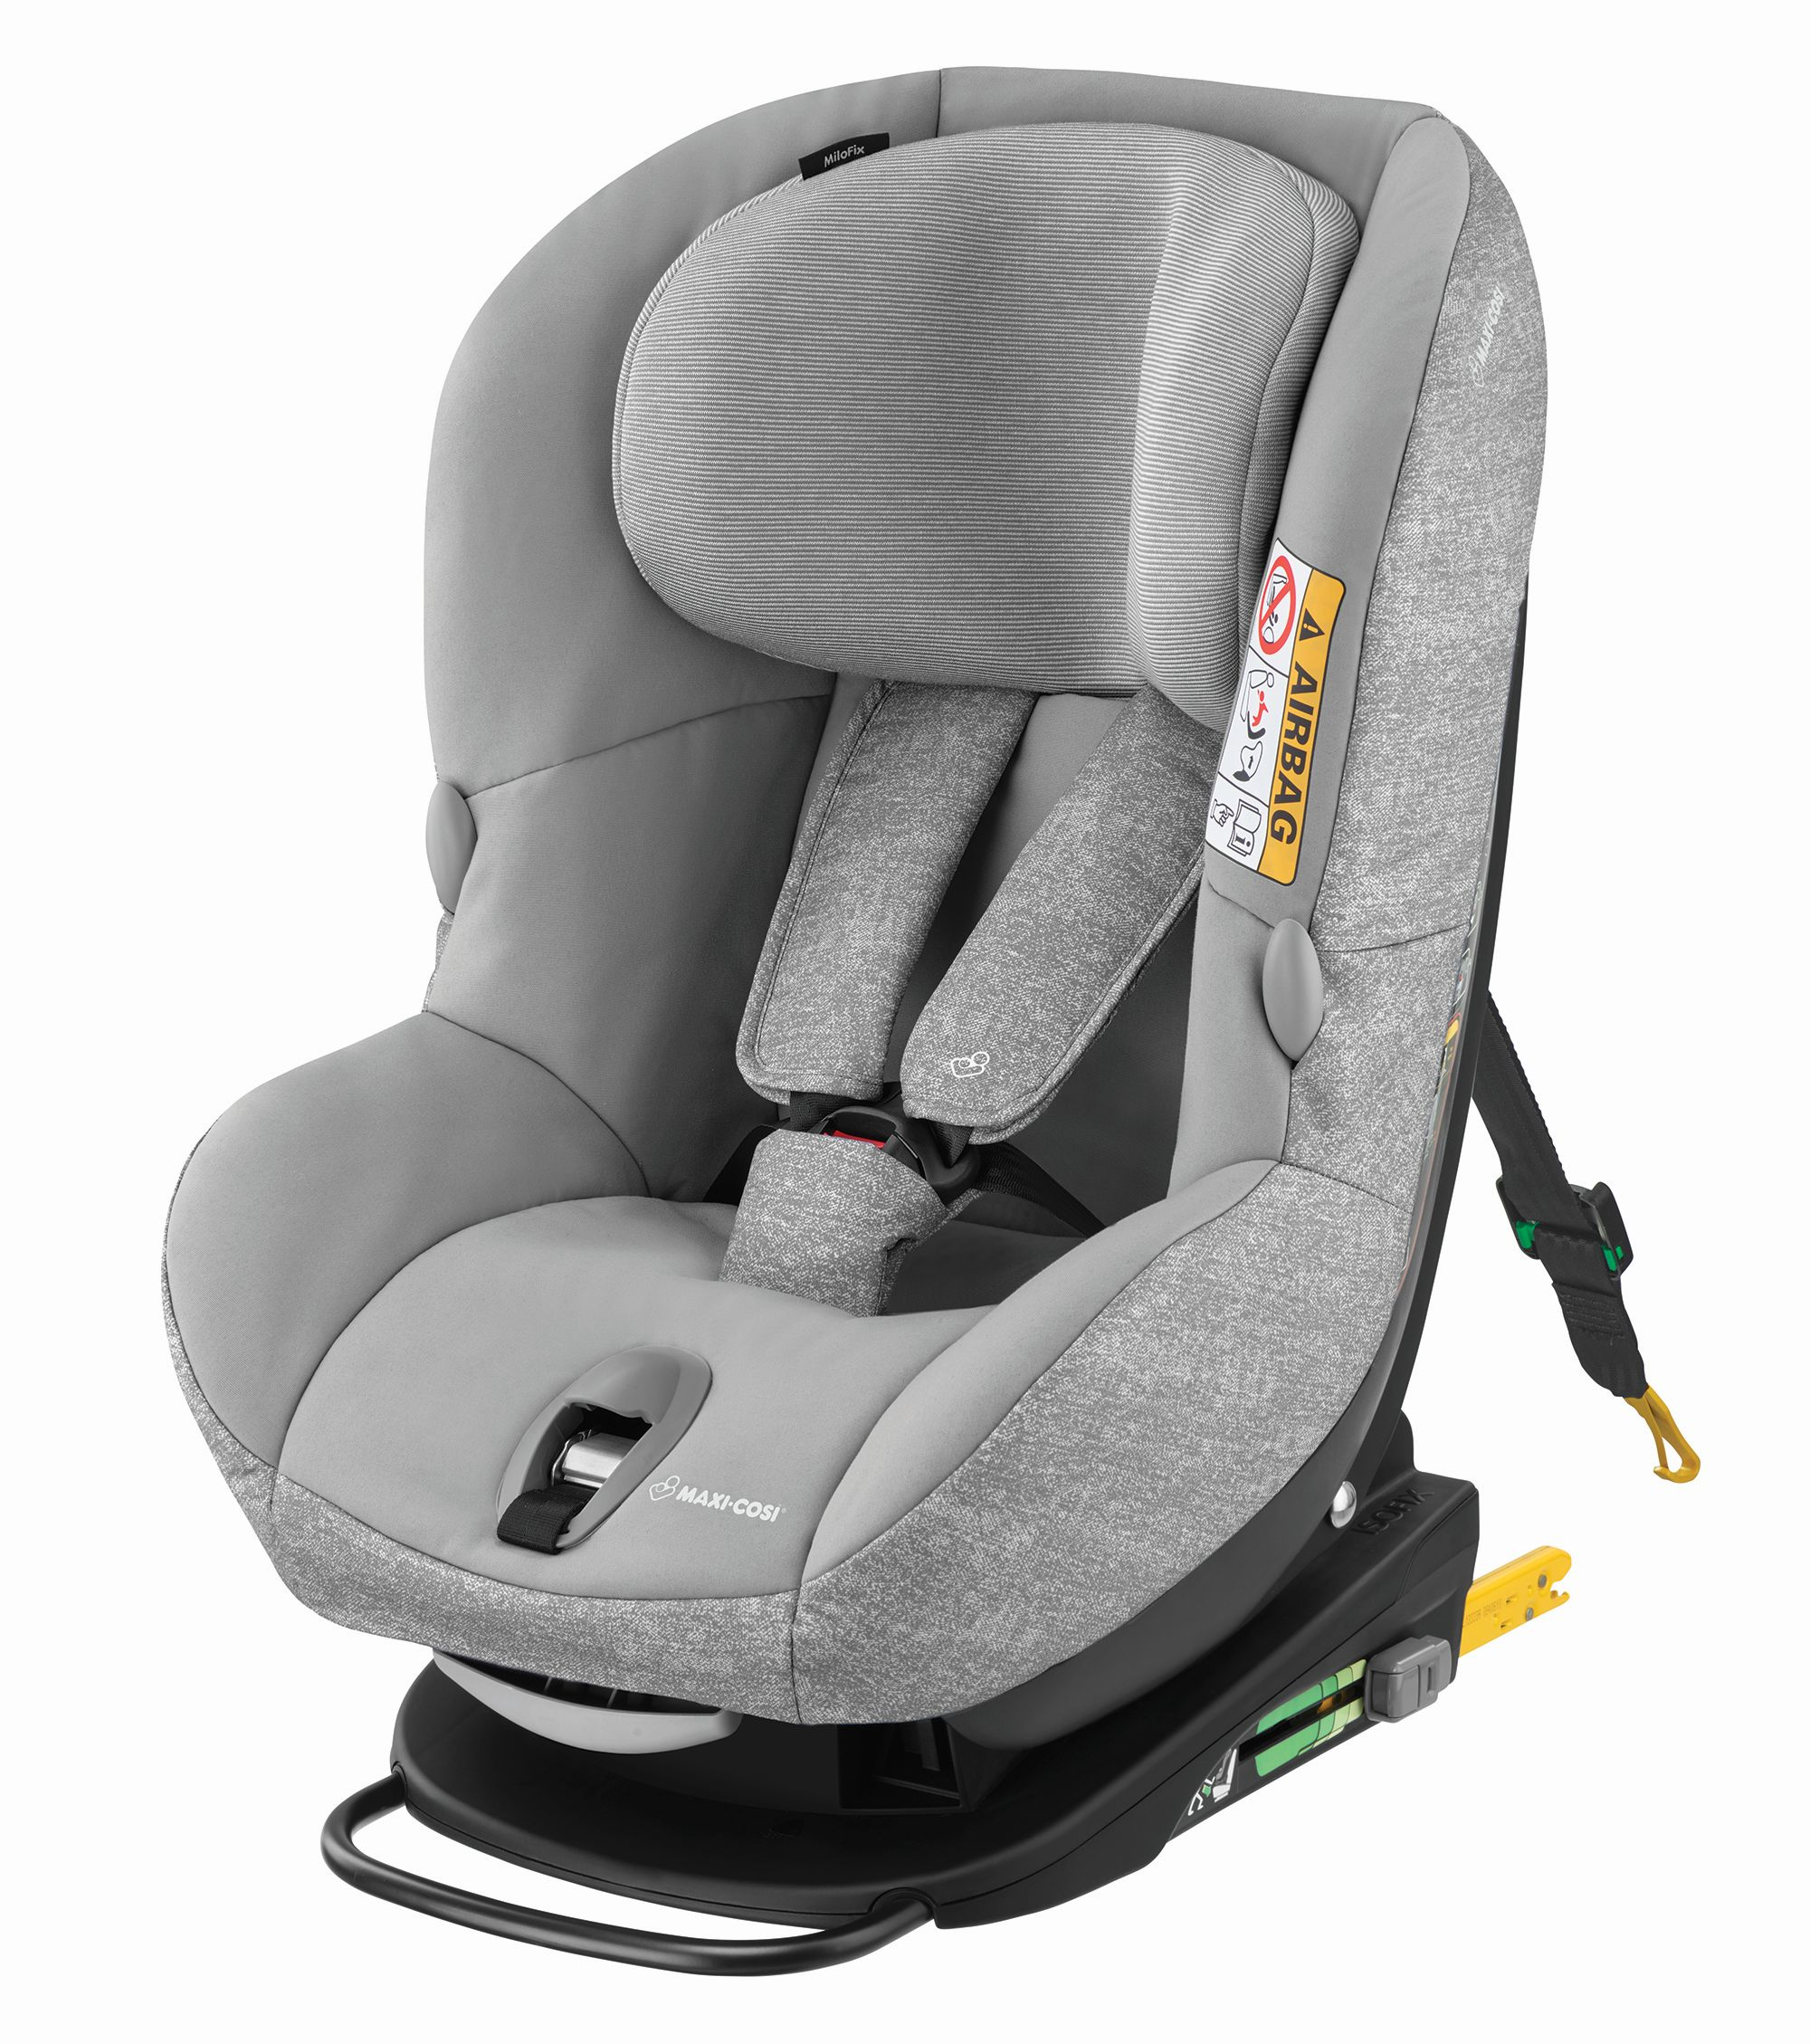 maxi cosi milofix 2018 nomad grey kidsroom isofix. Black Bedroom Furniture Sets. Home Design Ideas